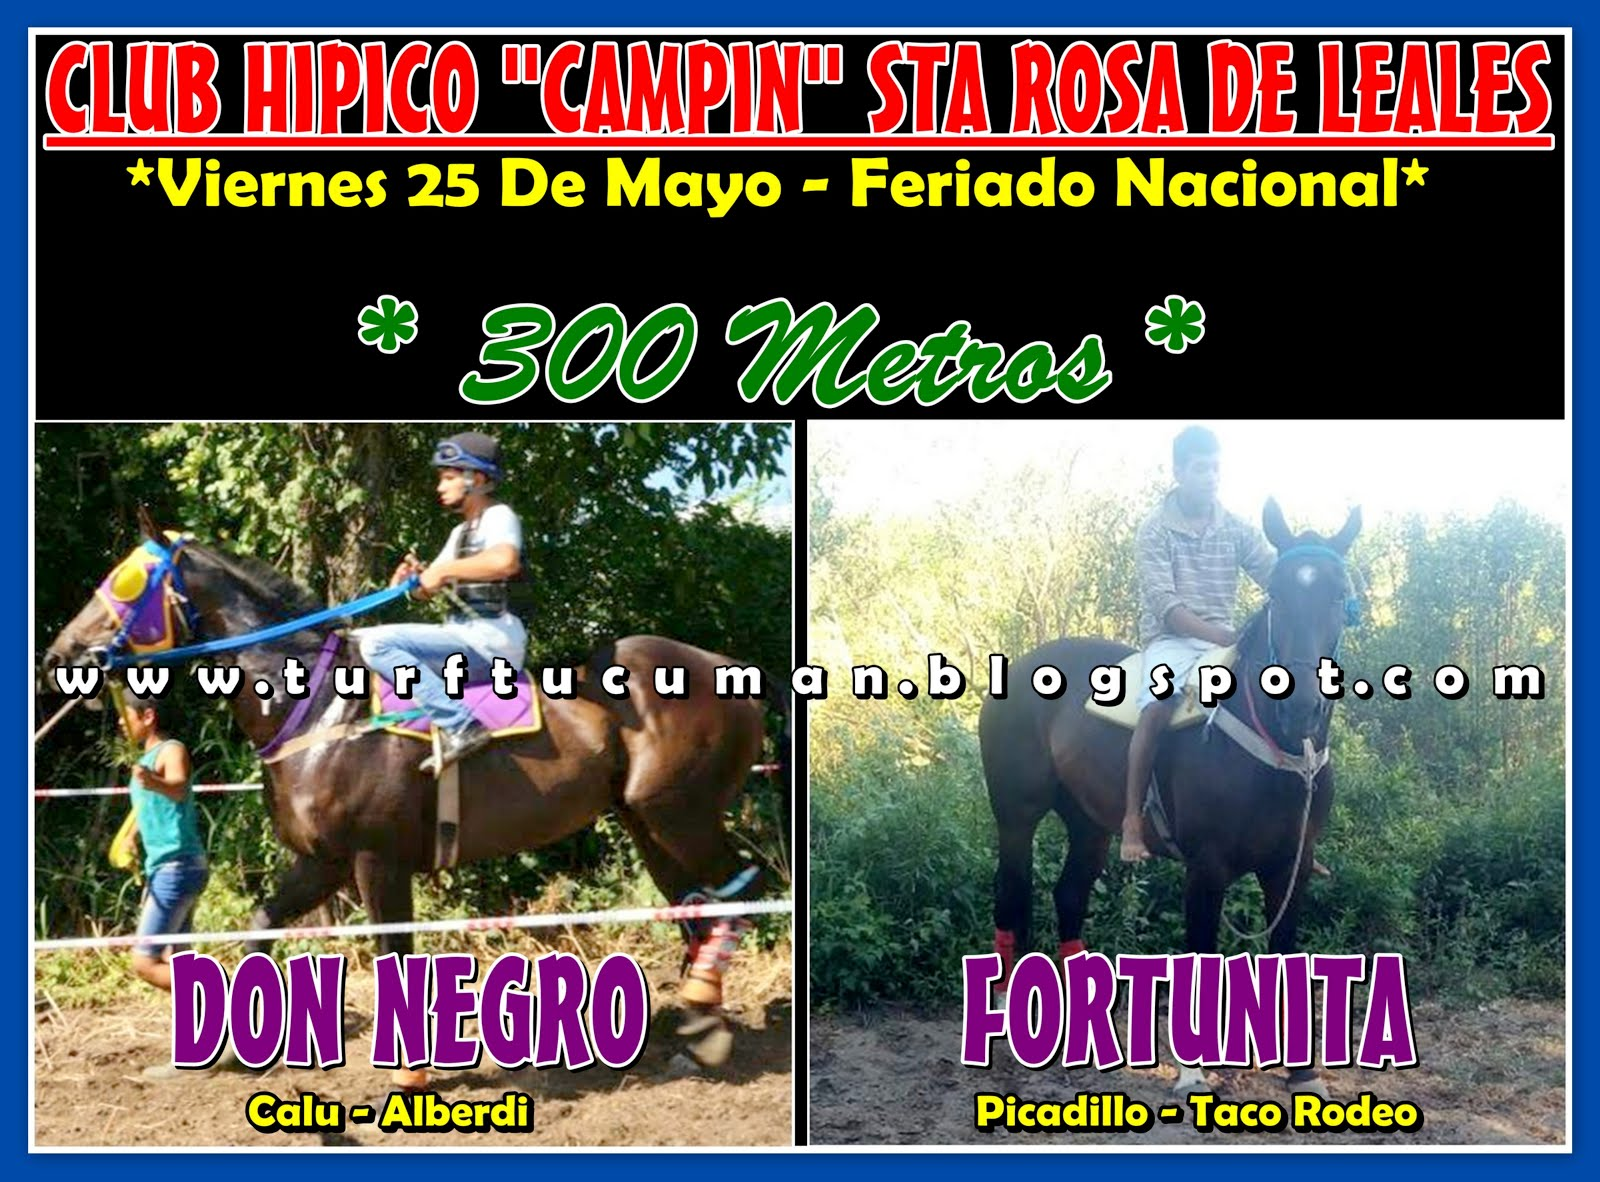 DON NEGRO VS FORTUNITA